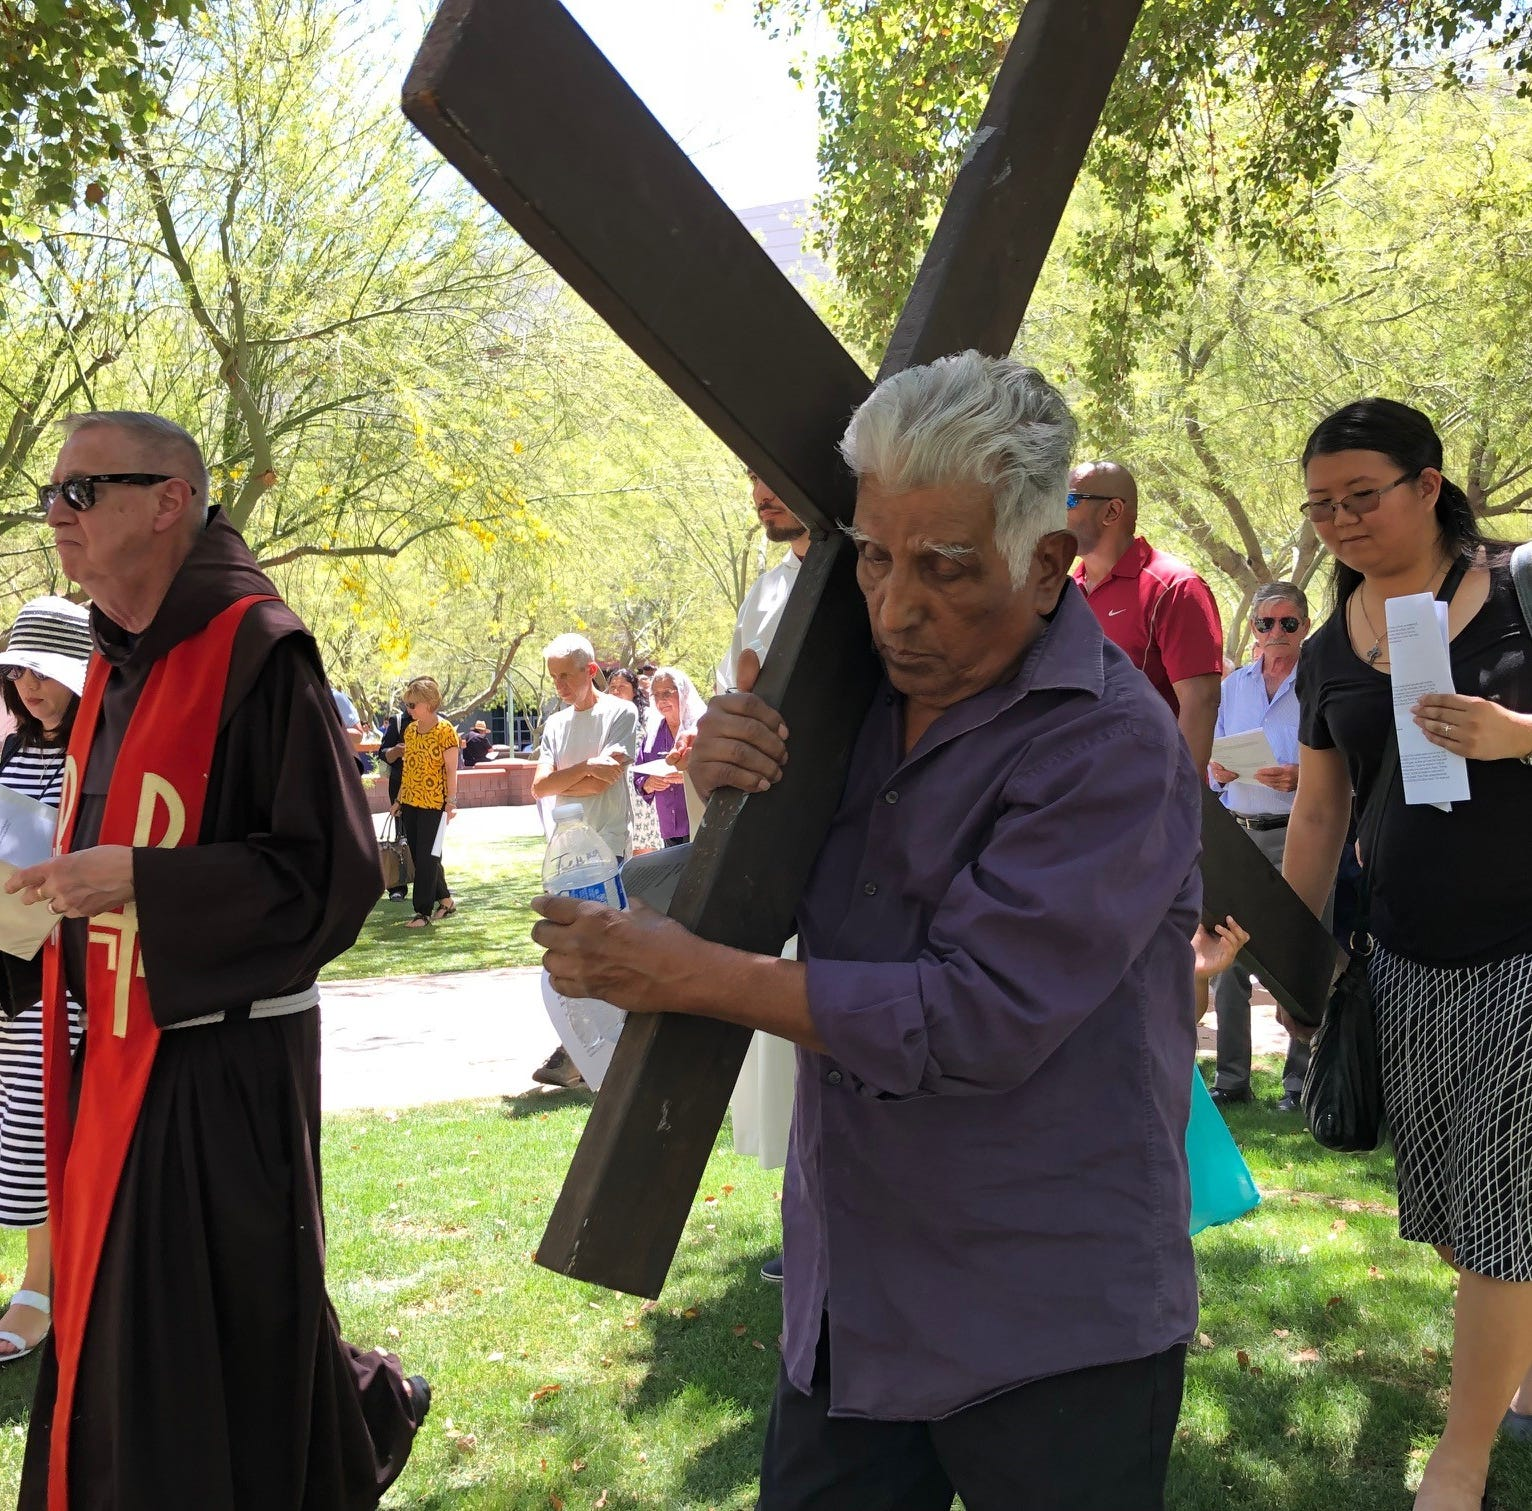 Tommy Almanza carries the cross at St. Mary's Roman Catholic Basilica on Friday.